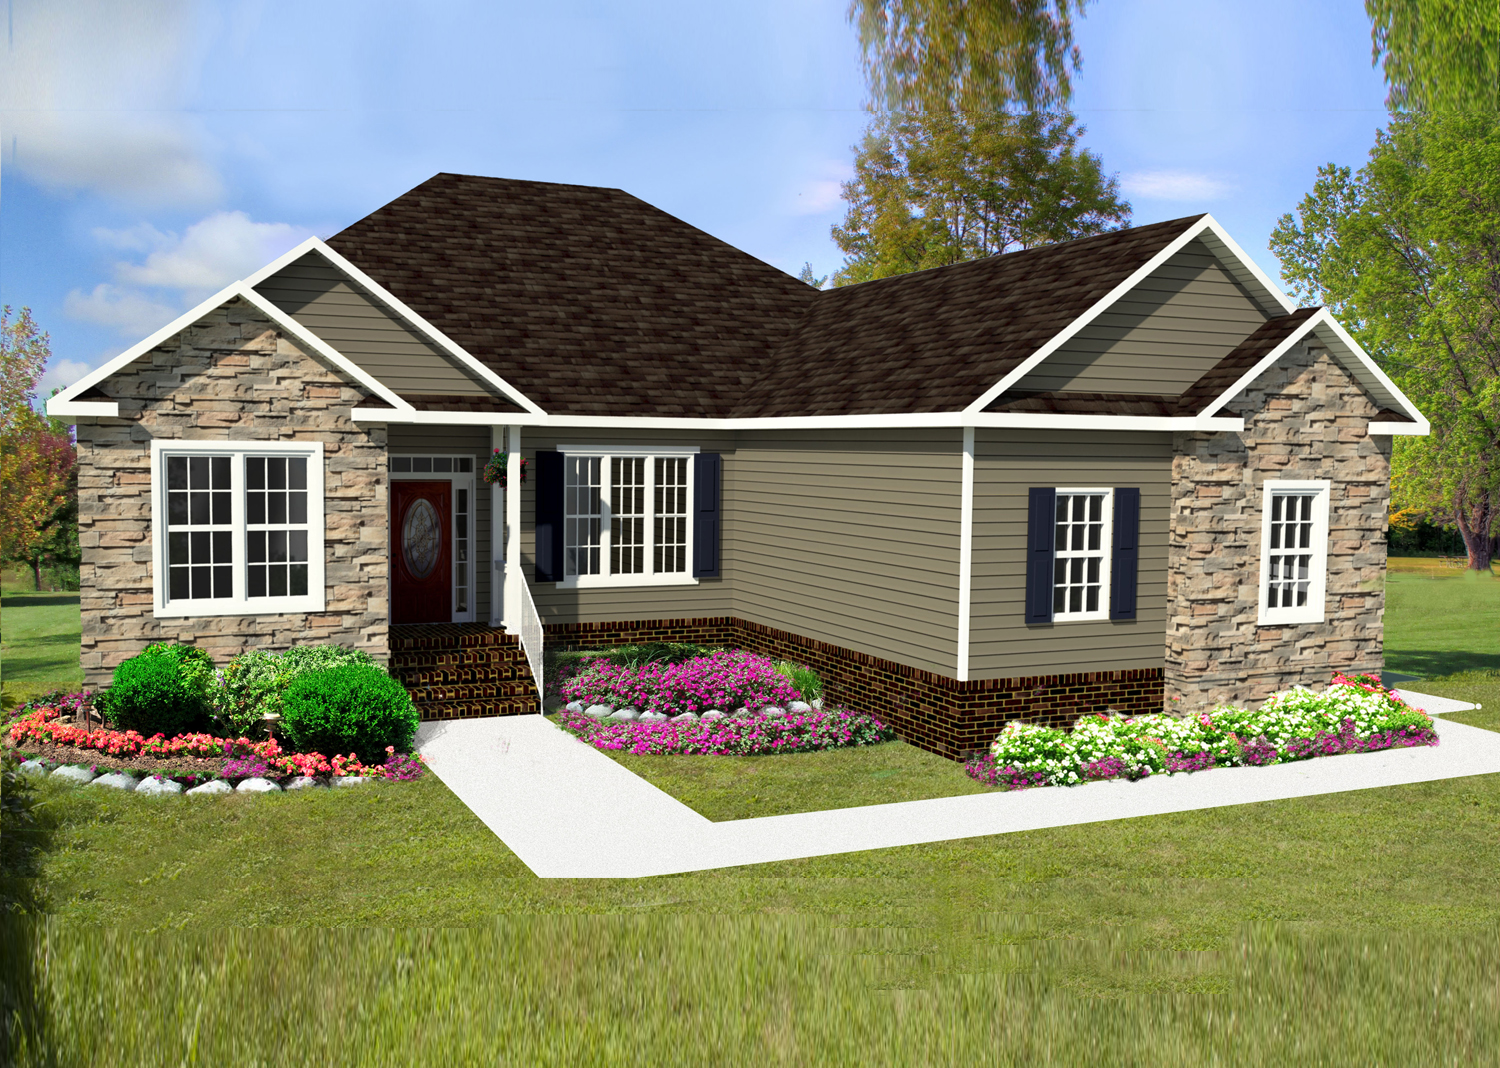 AB Homes The Branton II model Under Contract in Suffolk Virginia